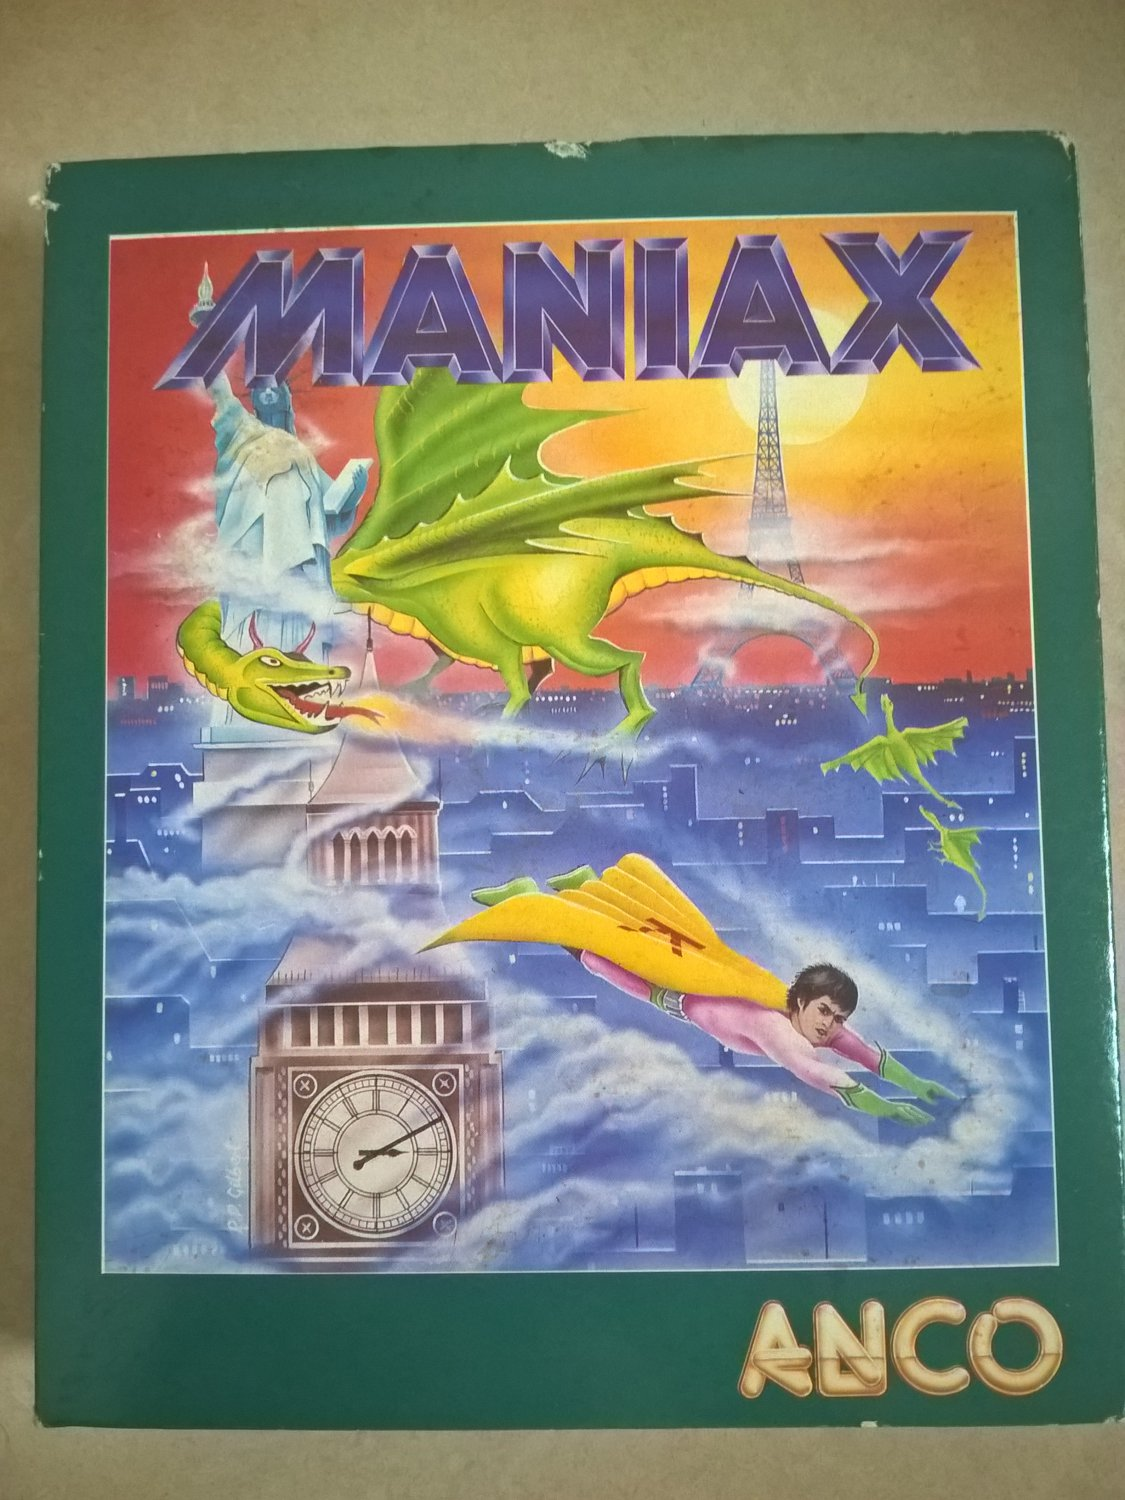 Maniax For Commodore Amiga, NEW OPEN BOX, Anco